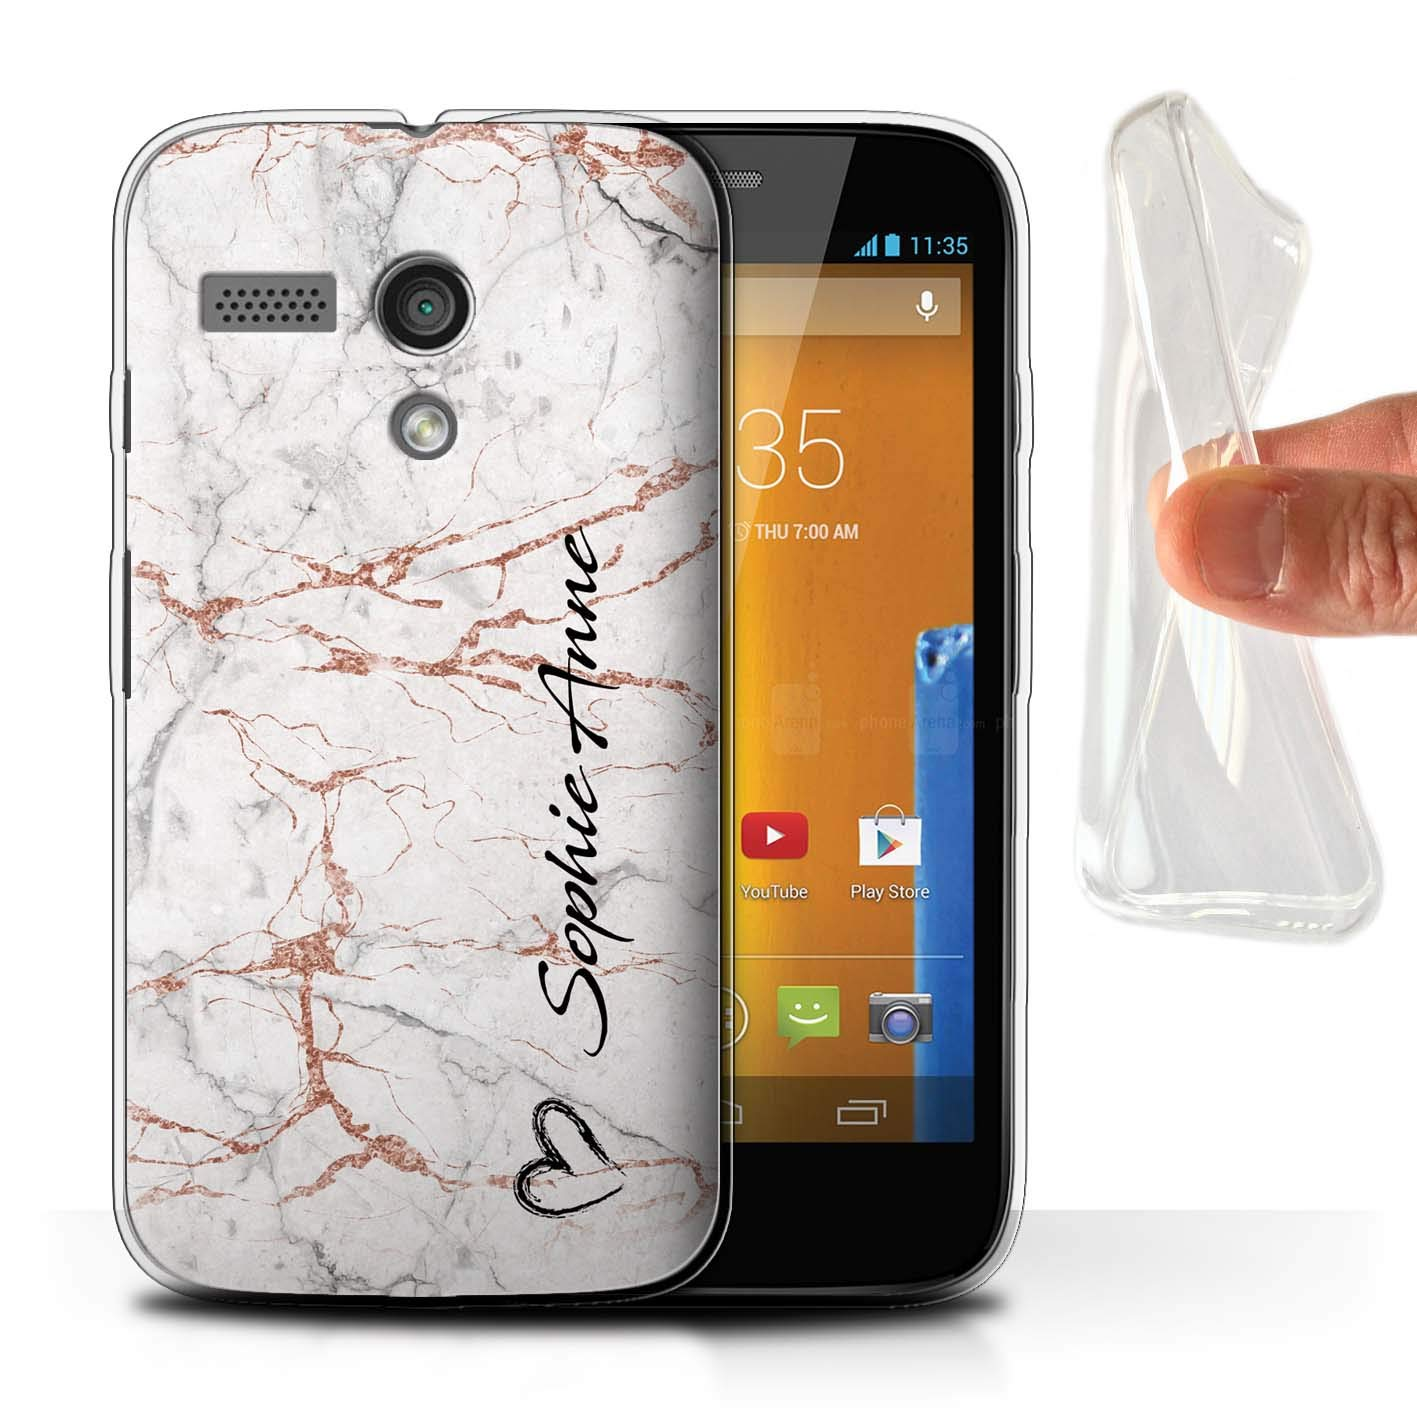 13d618bcea0e6b Amazon.com  Personalized Custom Rose Gold Endless Marble Gel TPU Case for  Motorola Moto G (2013)   Black Brush Heart Signature  Design Initial Name Text DIY ...